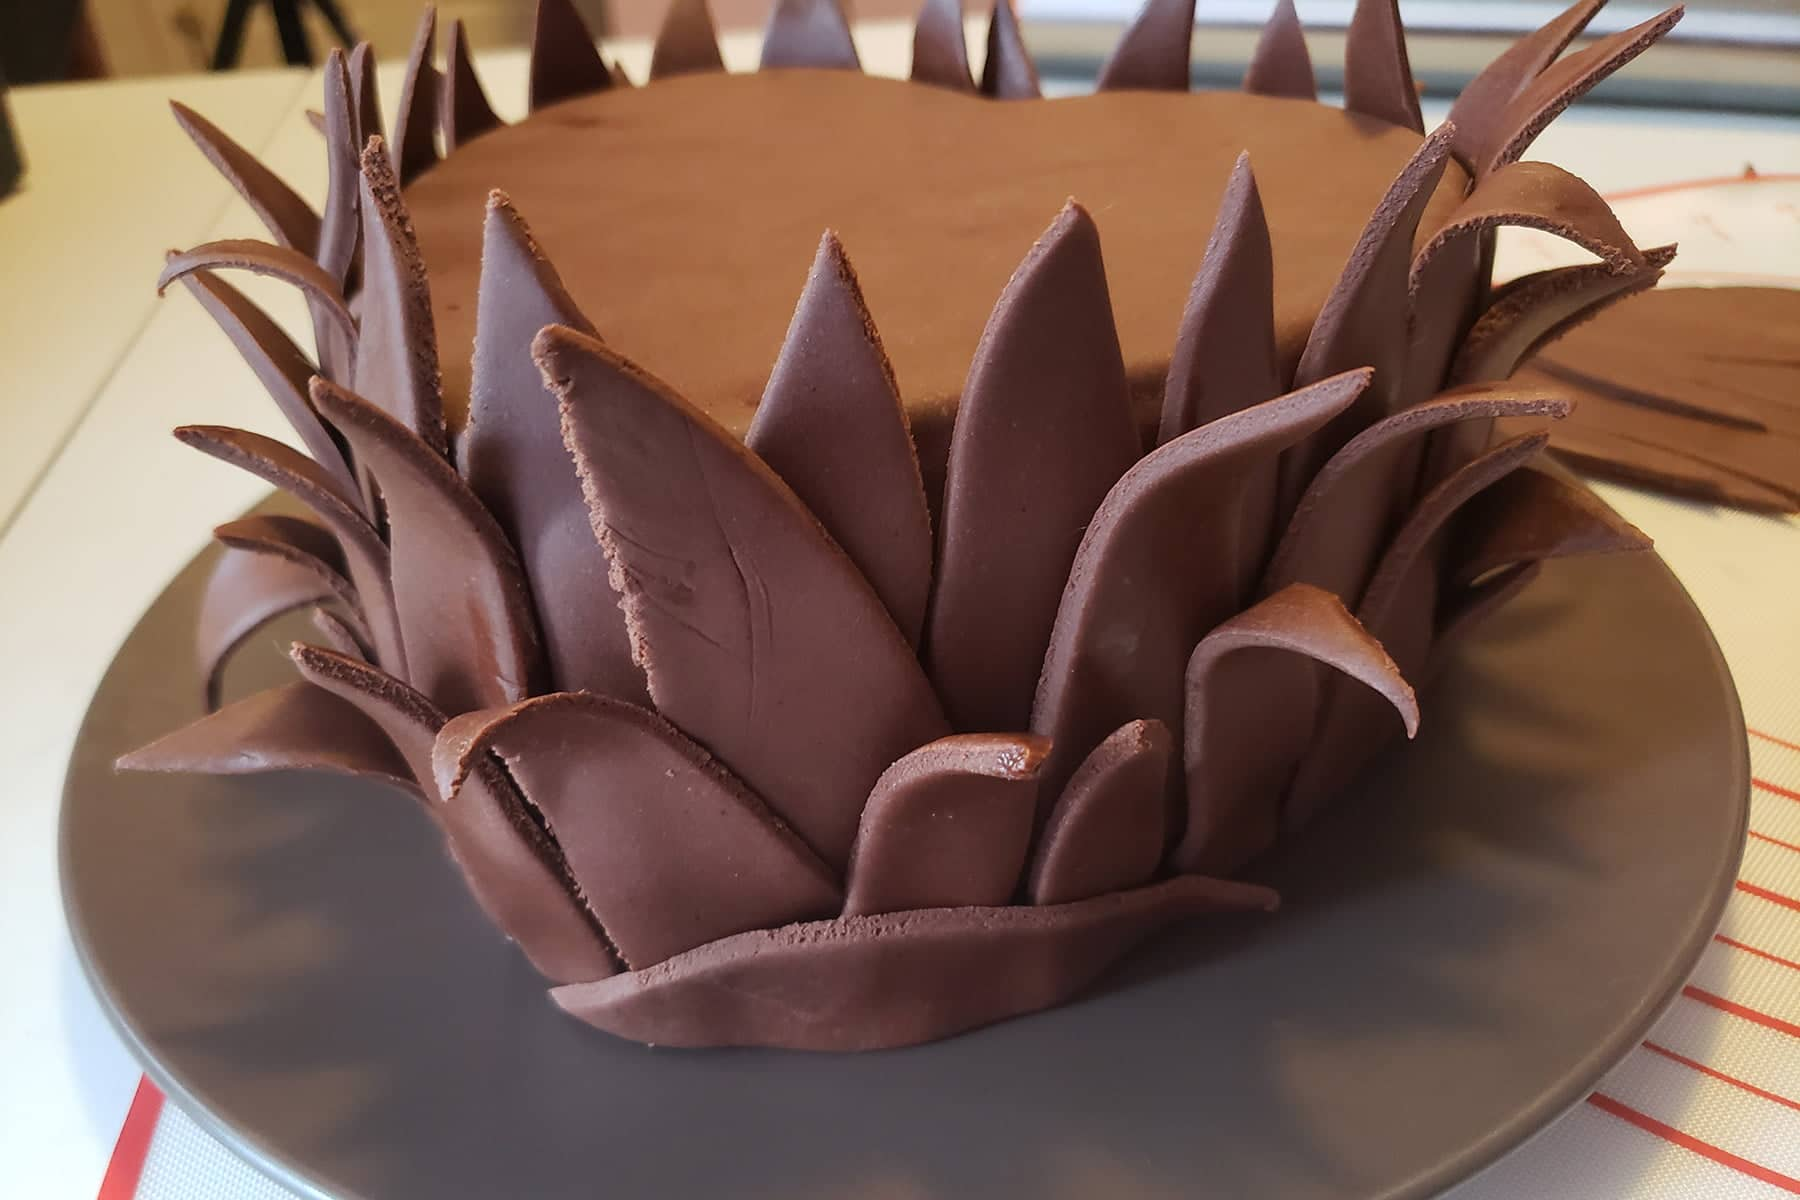 Close up view of a heart shaped cake covered in chocolate fondant. The sides have many chocolate leaves covering them, curling down on themselves.